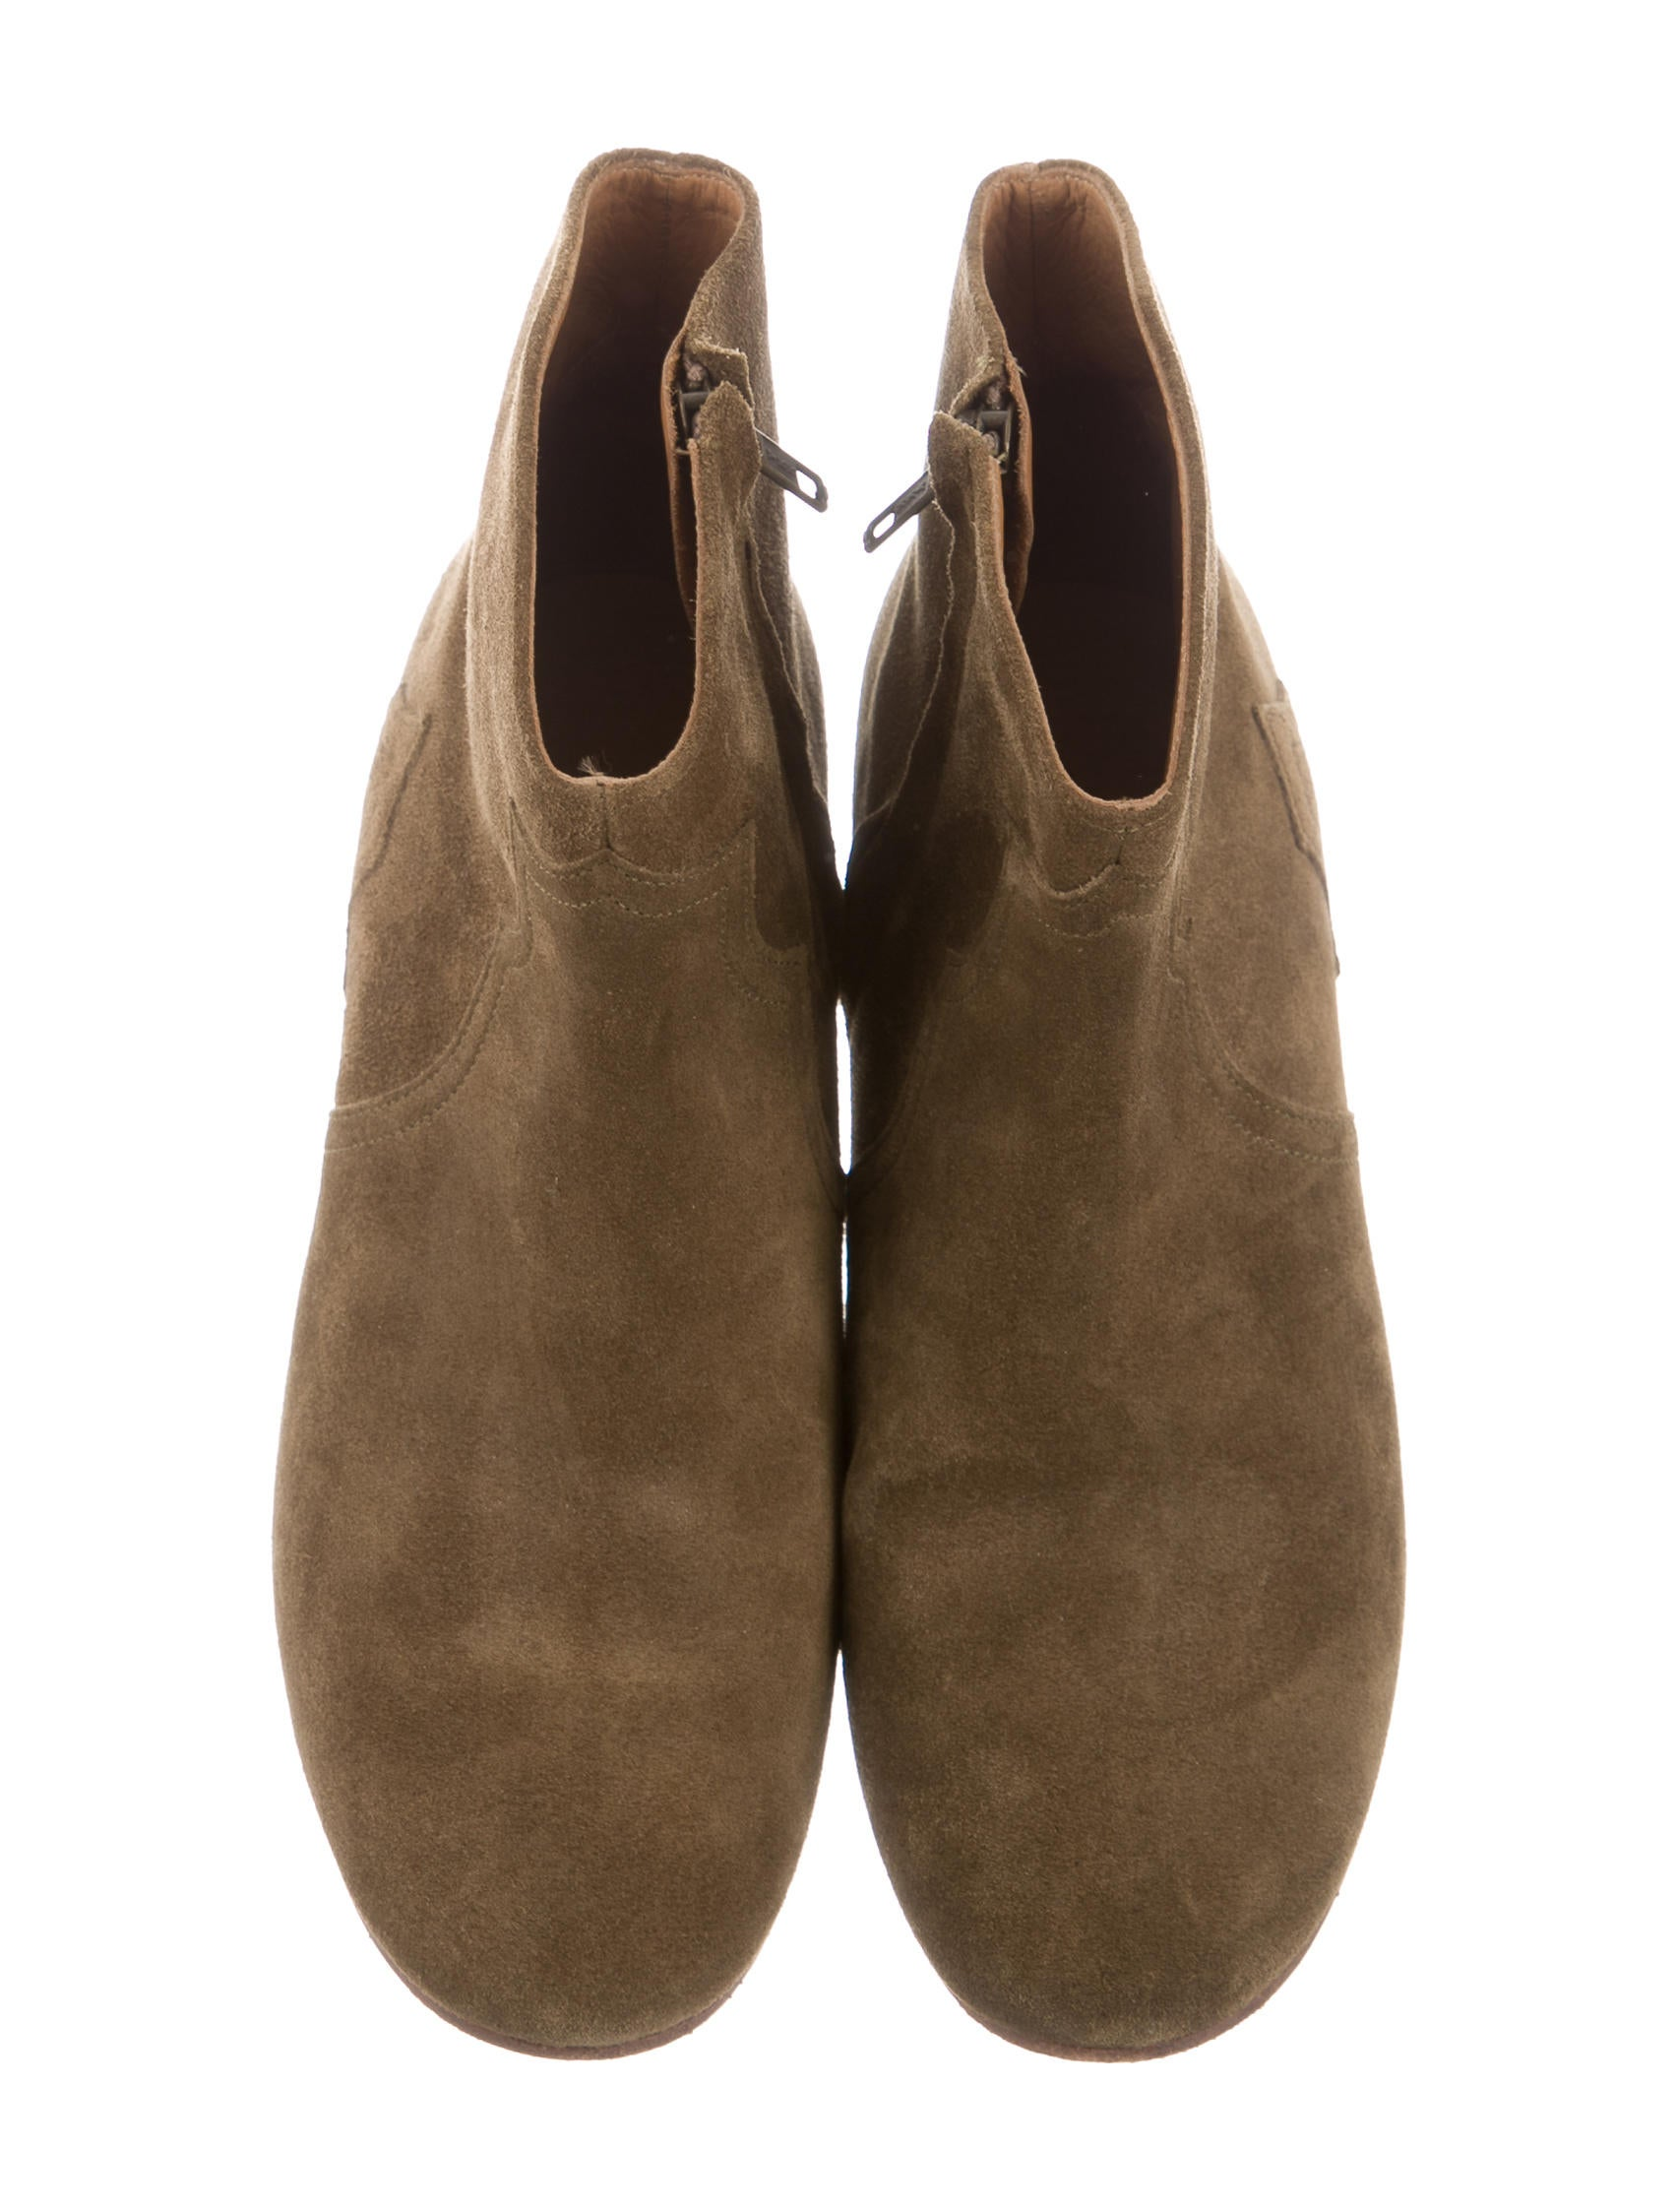 marant suede dicker ankle boots shoes isa40620